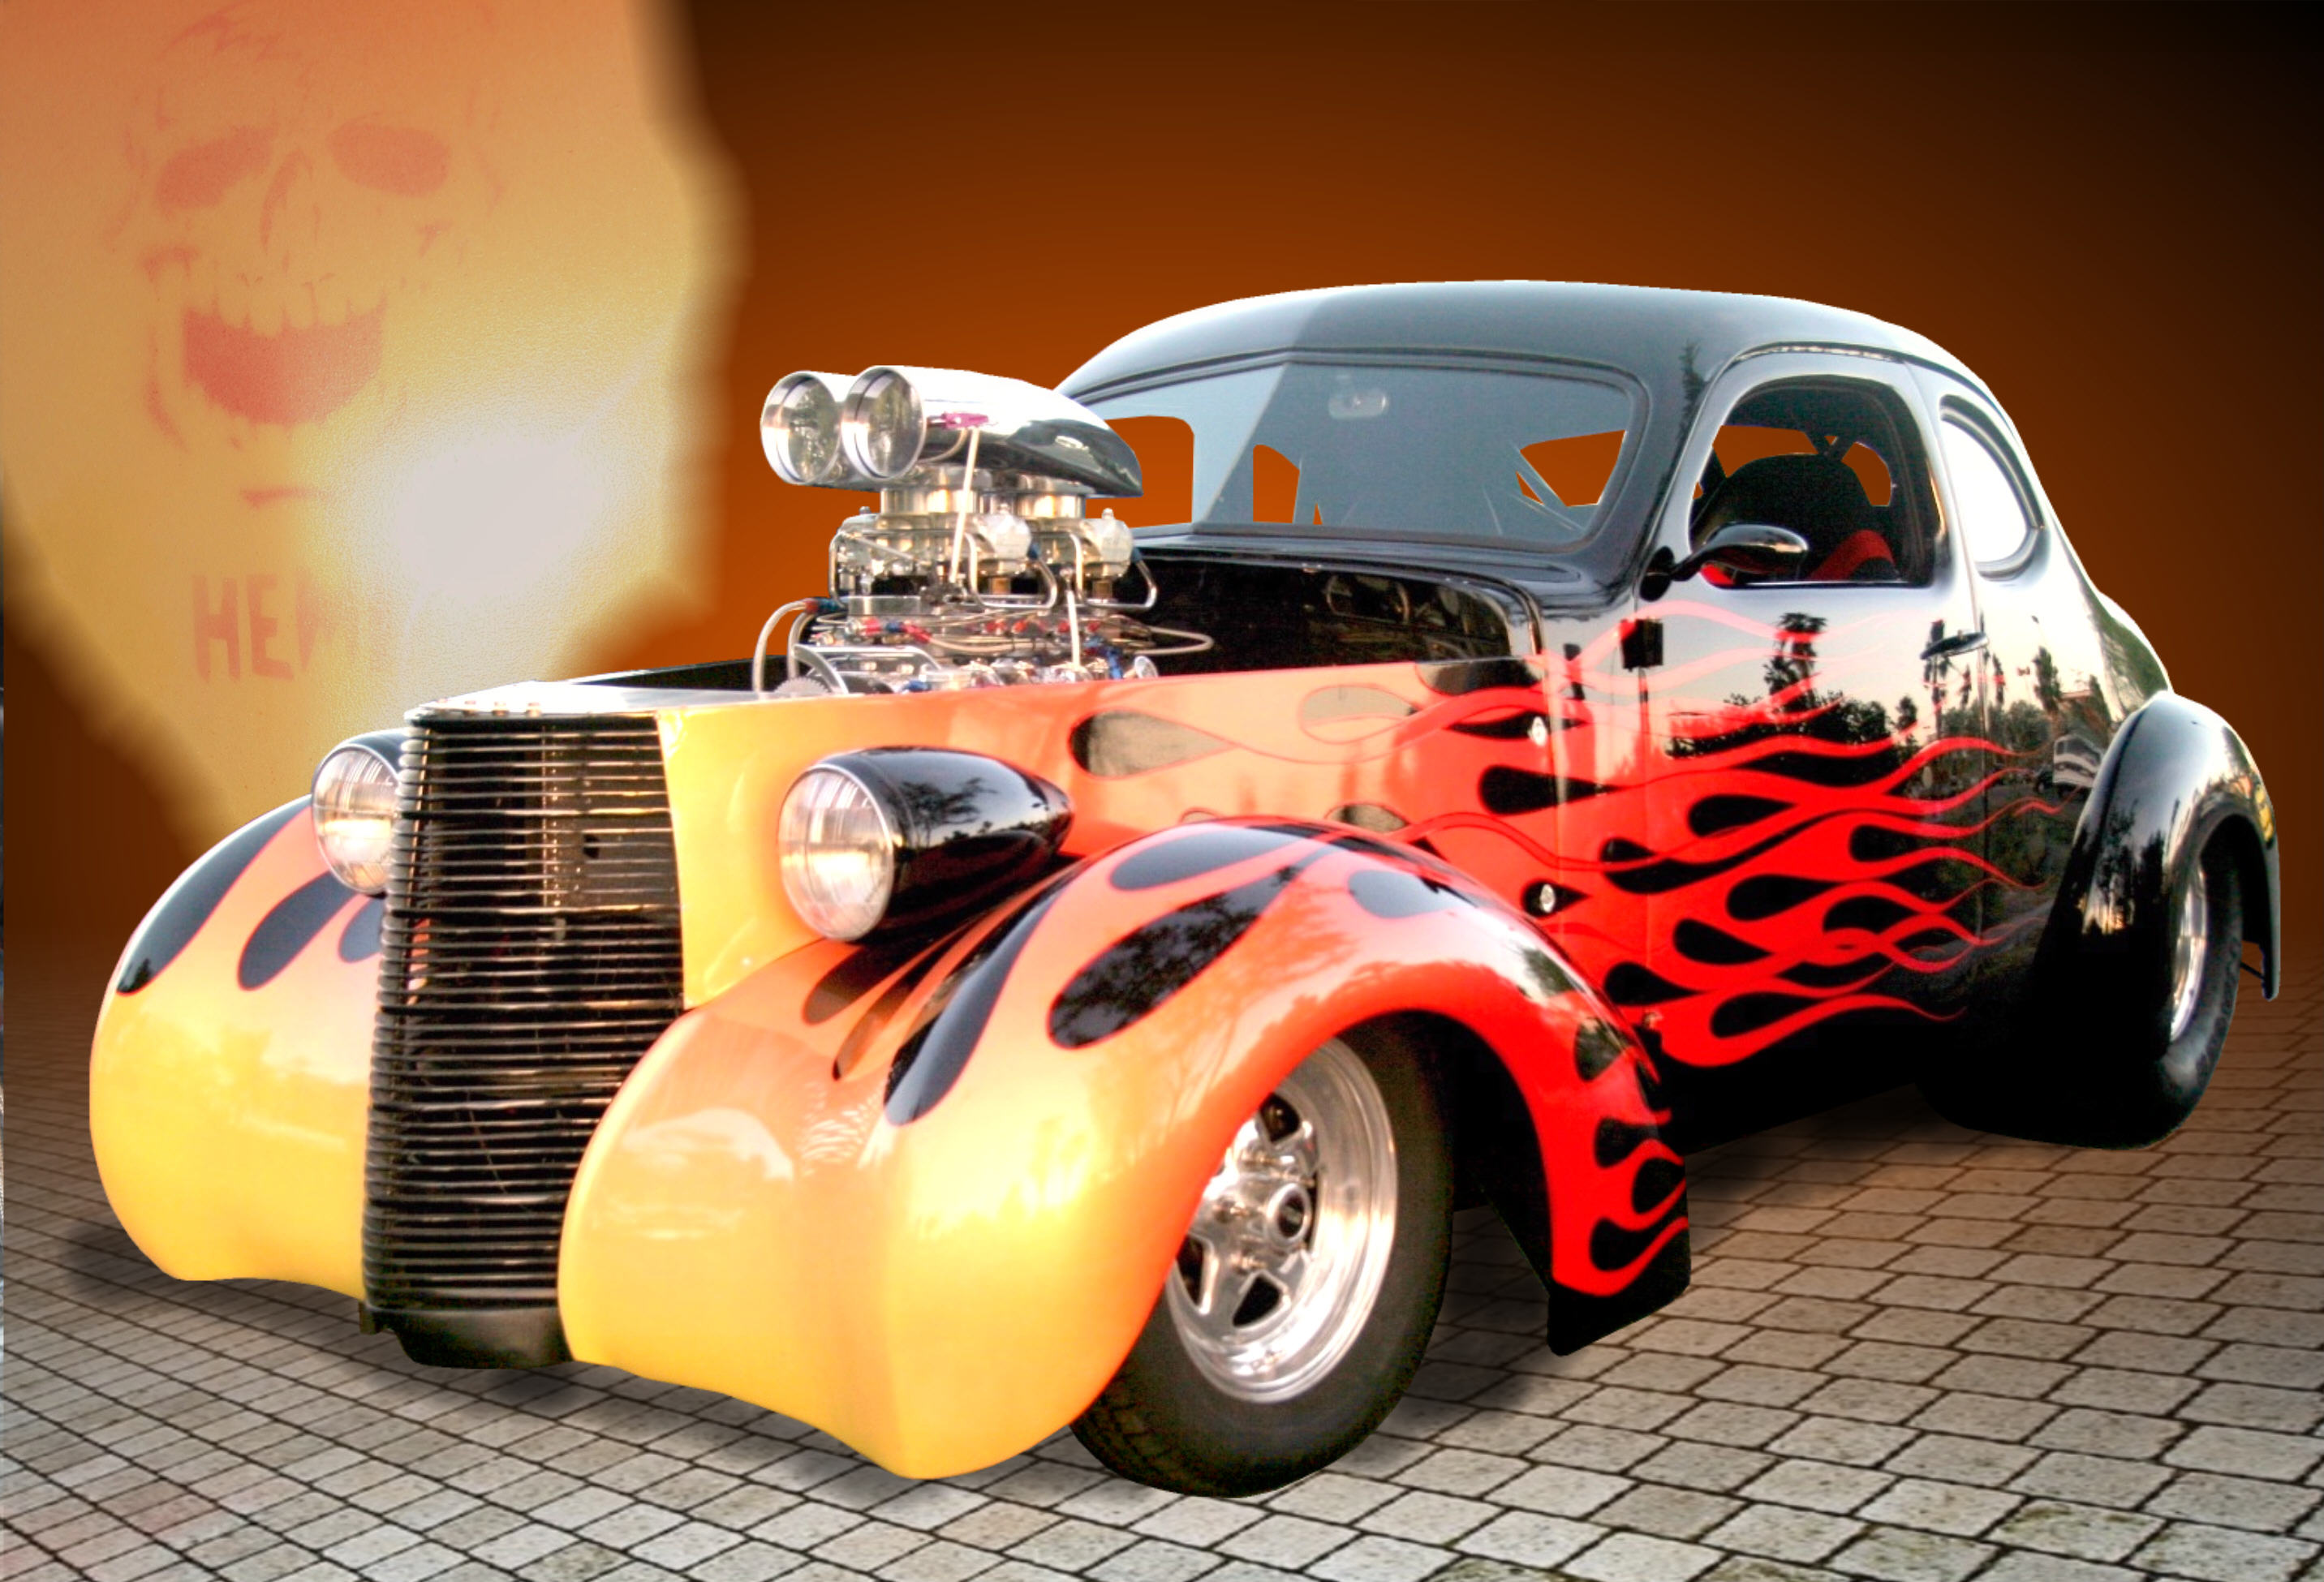 Hot Rod Computer Wallpapers Desktop Backgrounds 2864x1950 ID 2864x1950